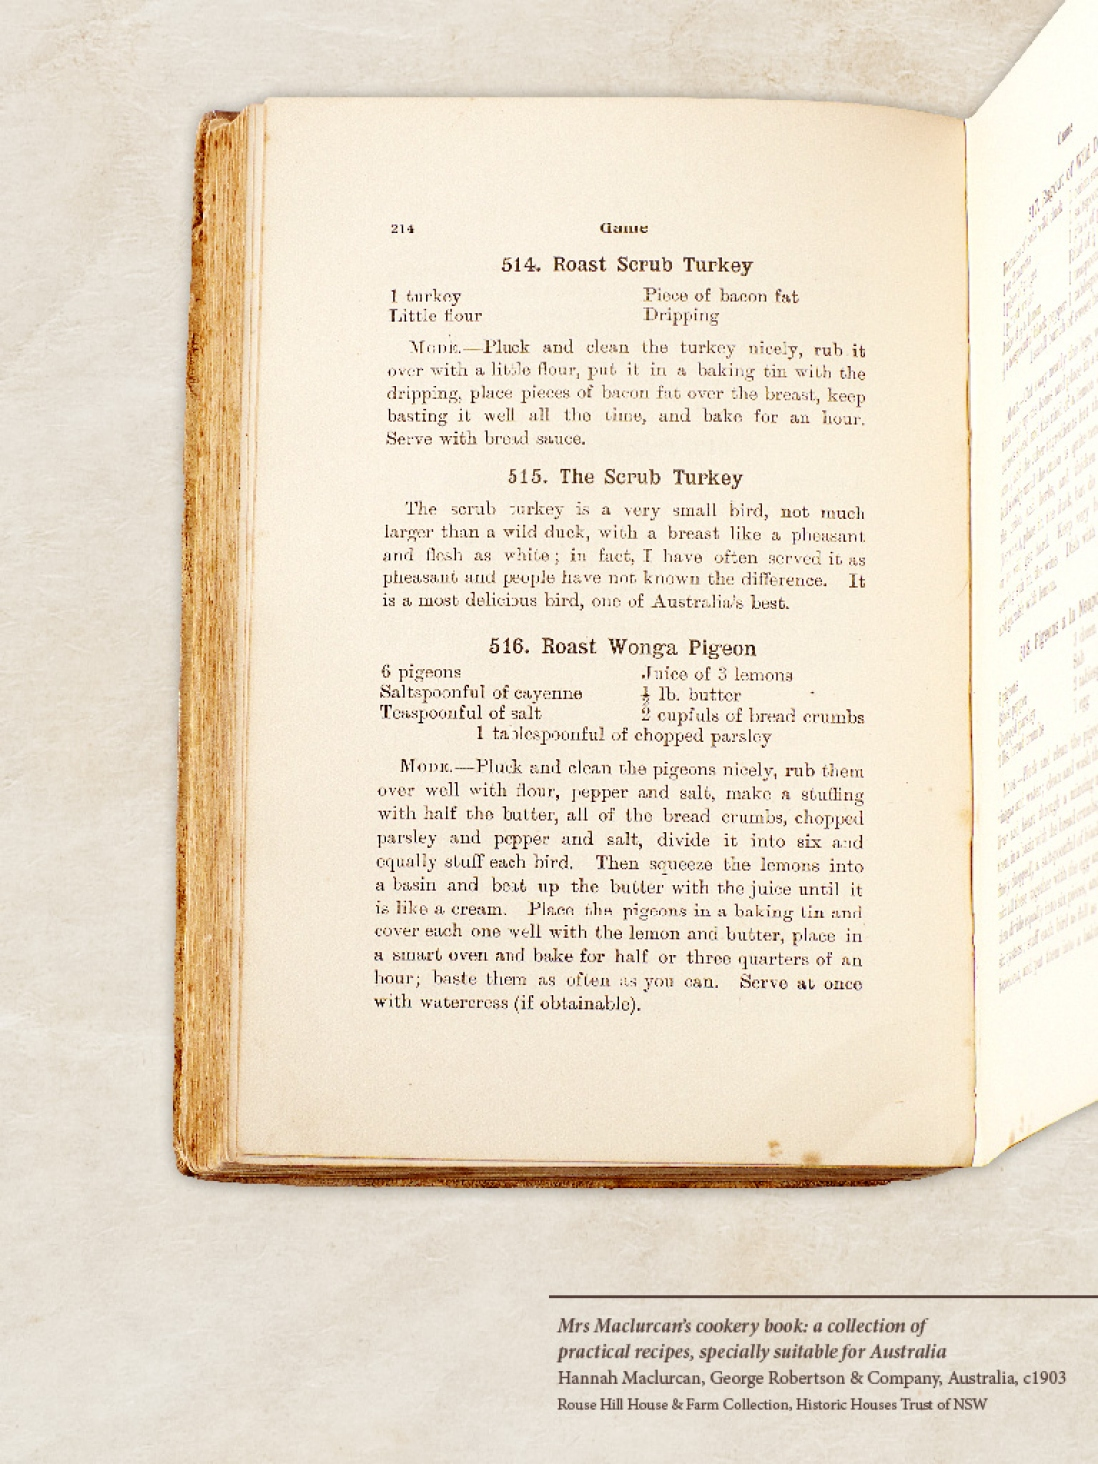 Rouse Hill recipes | Sydney Living Museums